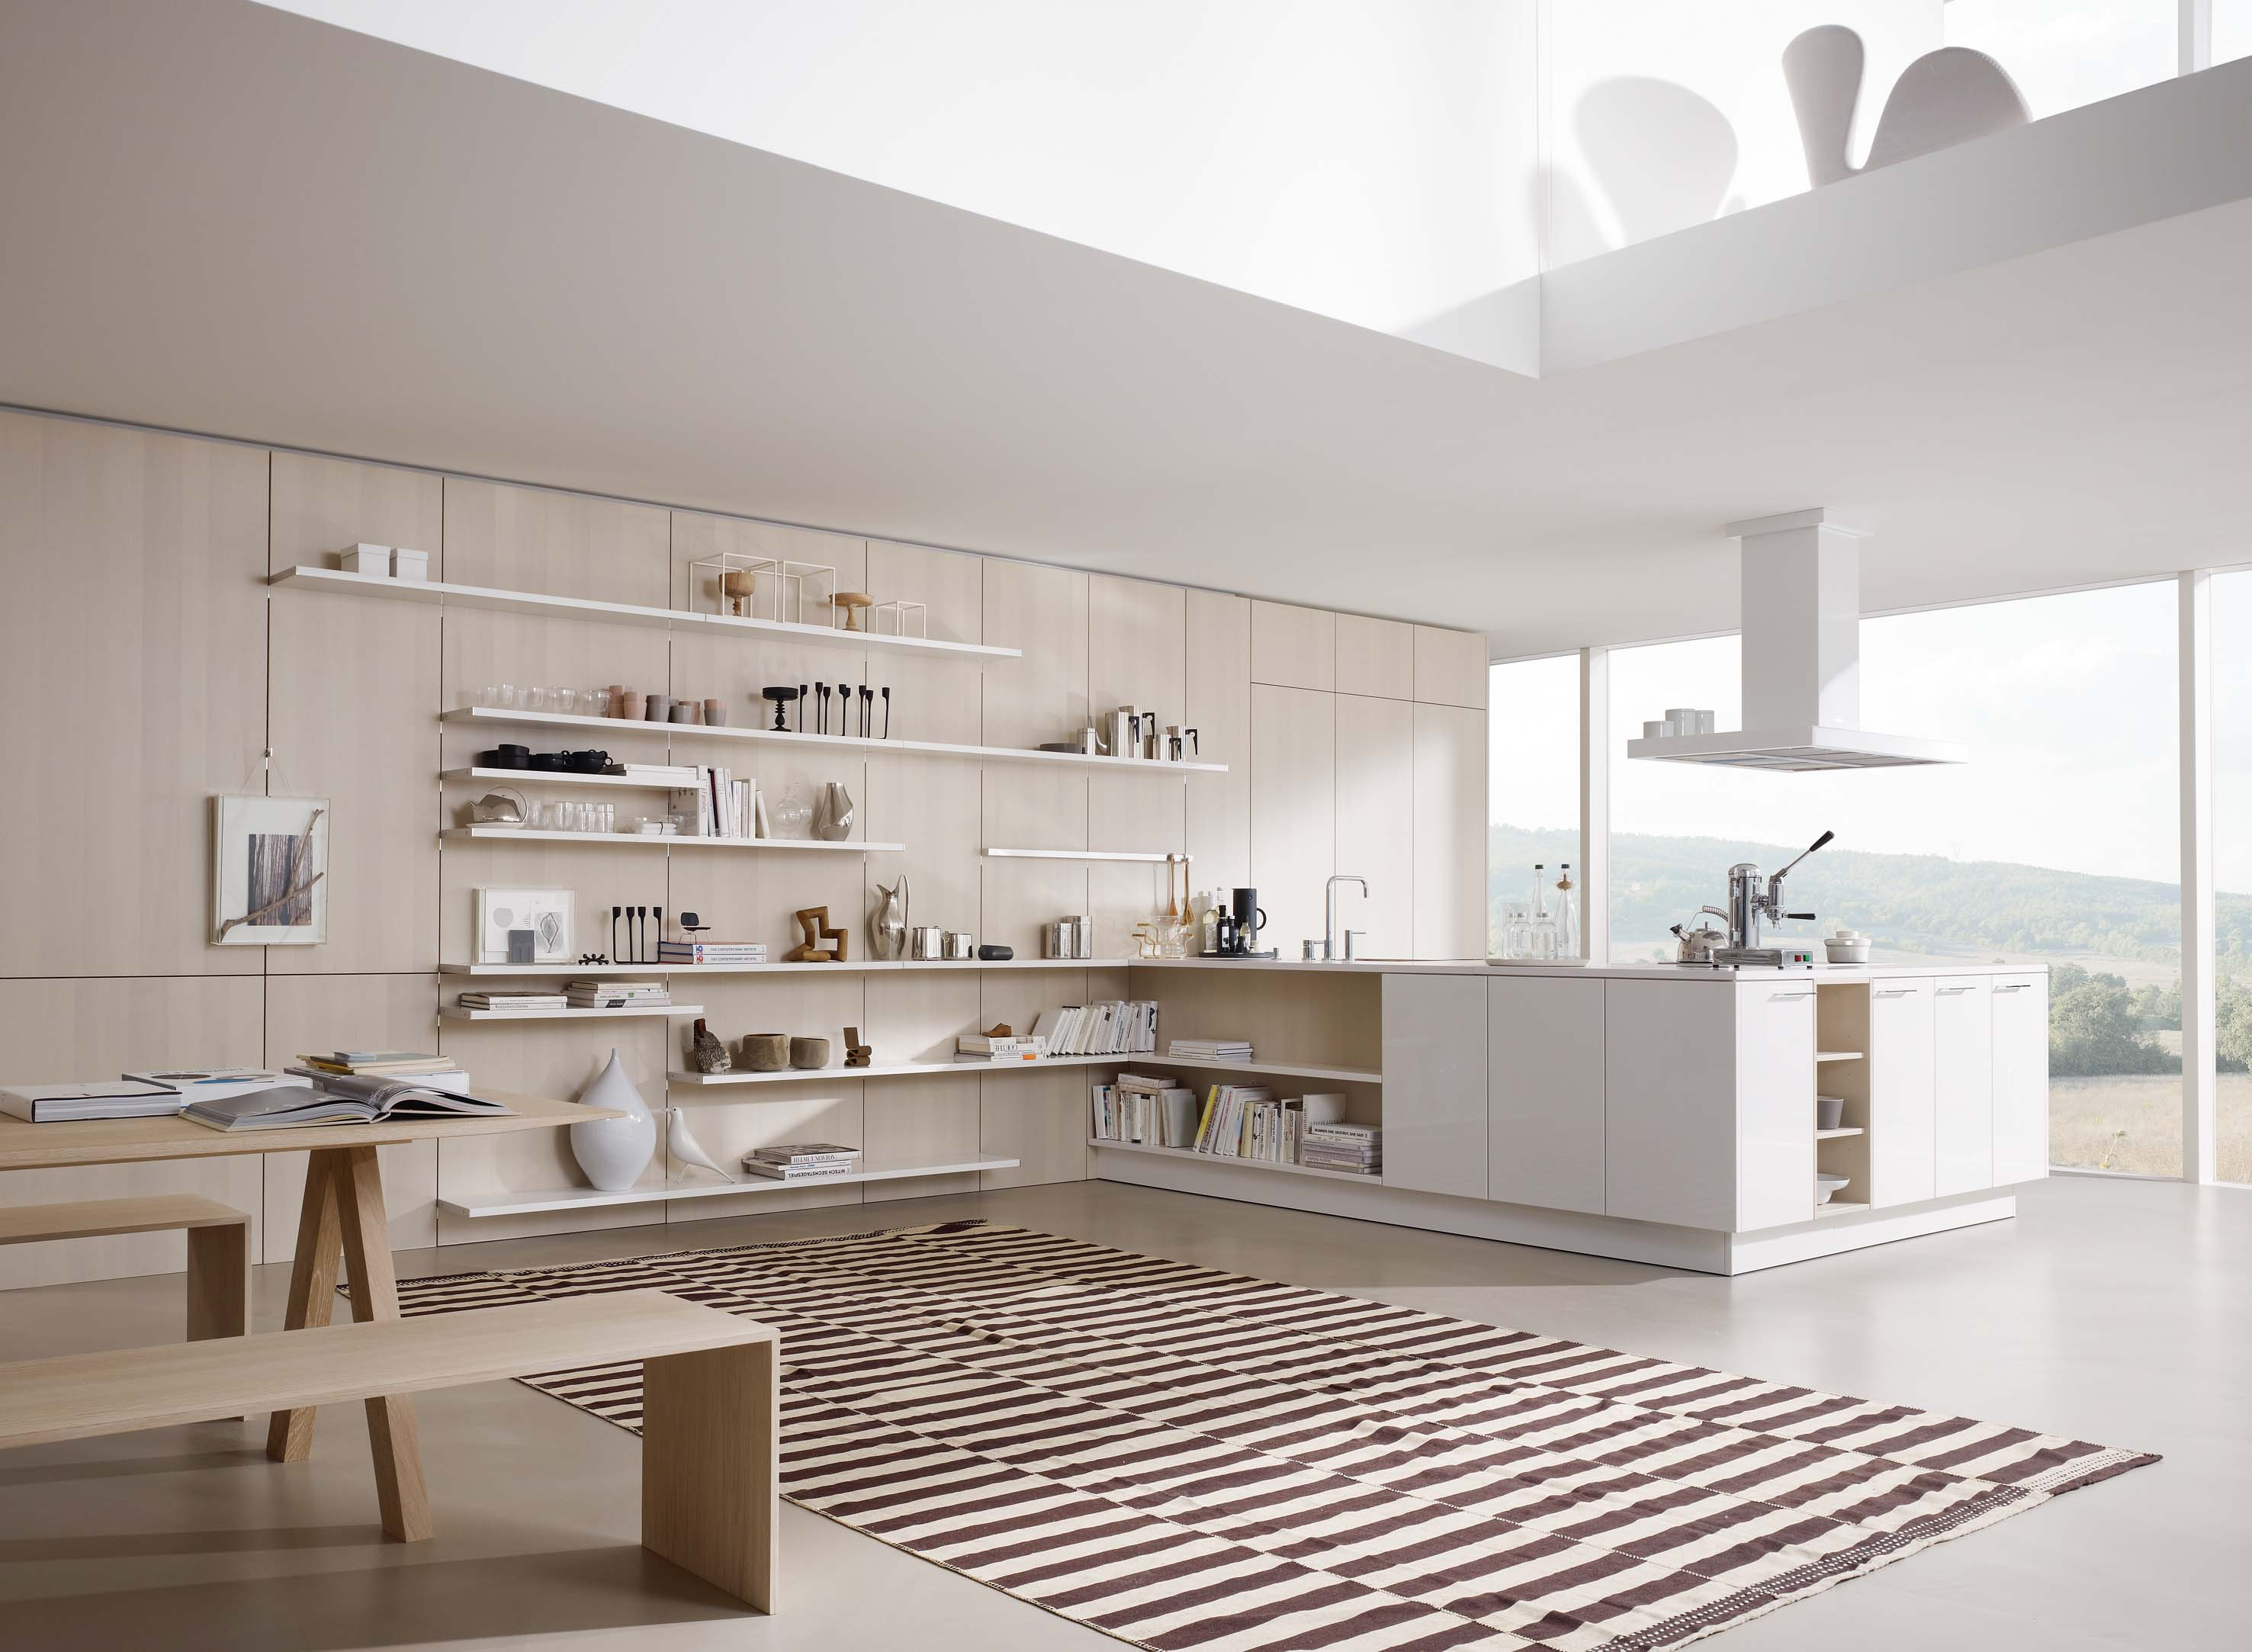 Siematic receives riba accreditation to run cpd seminars for Siematic kitchen design